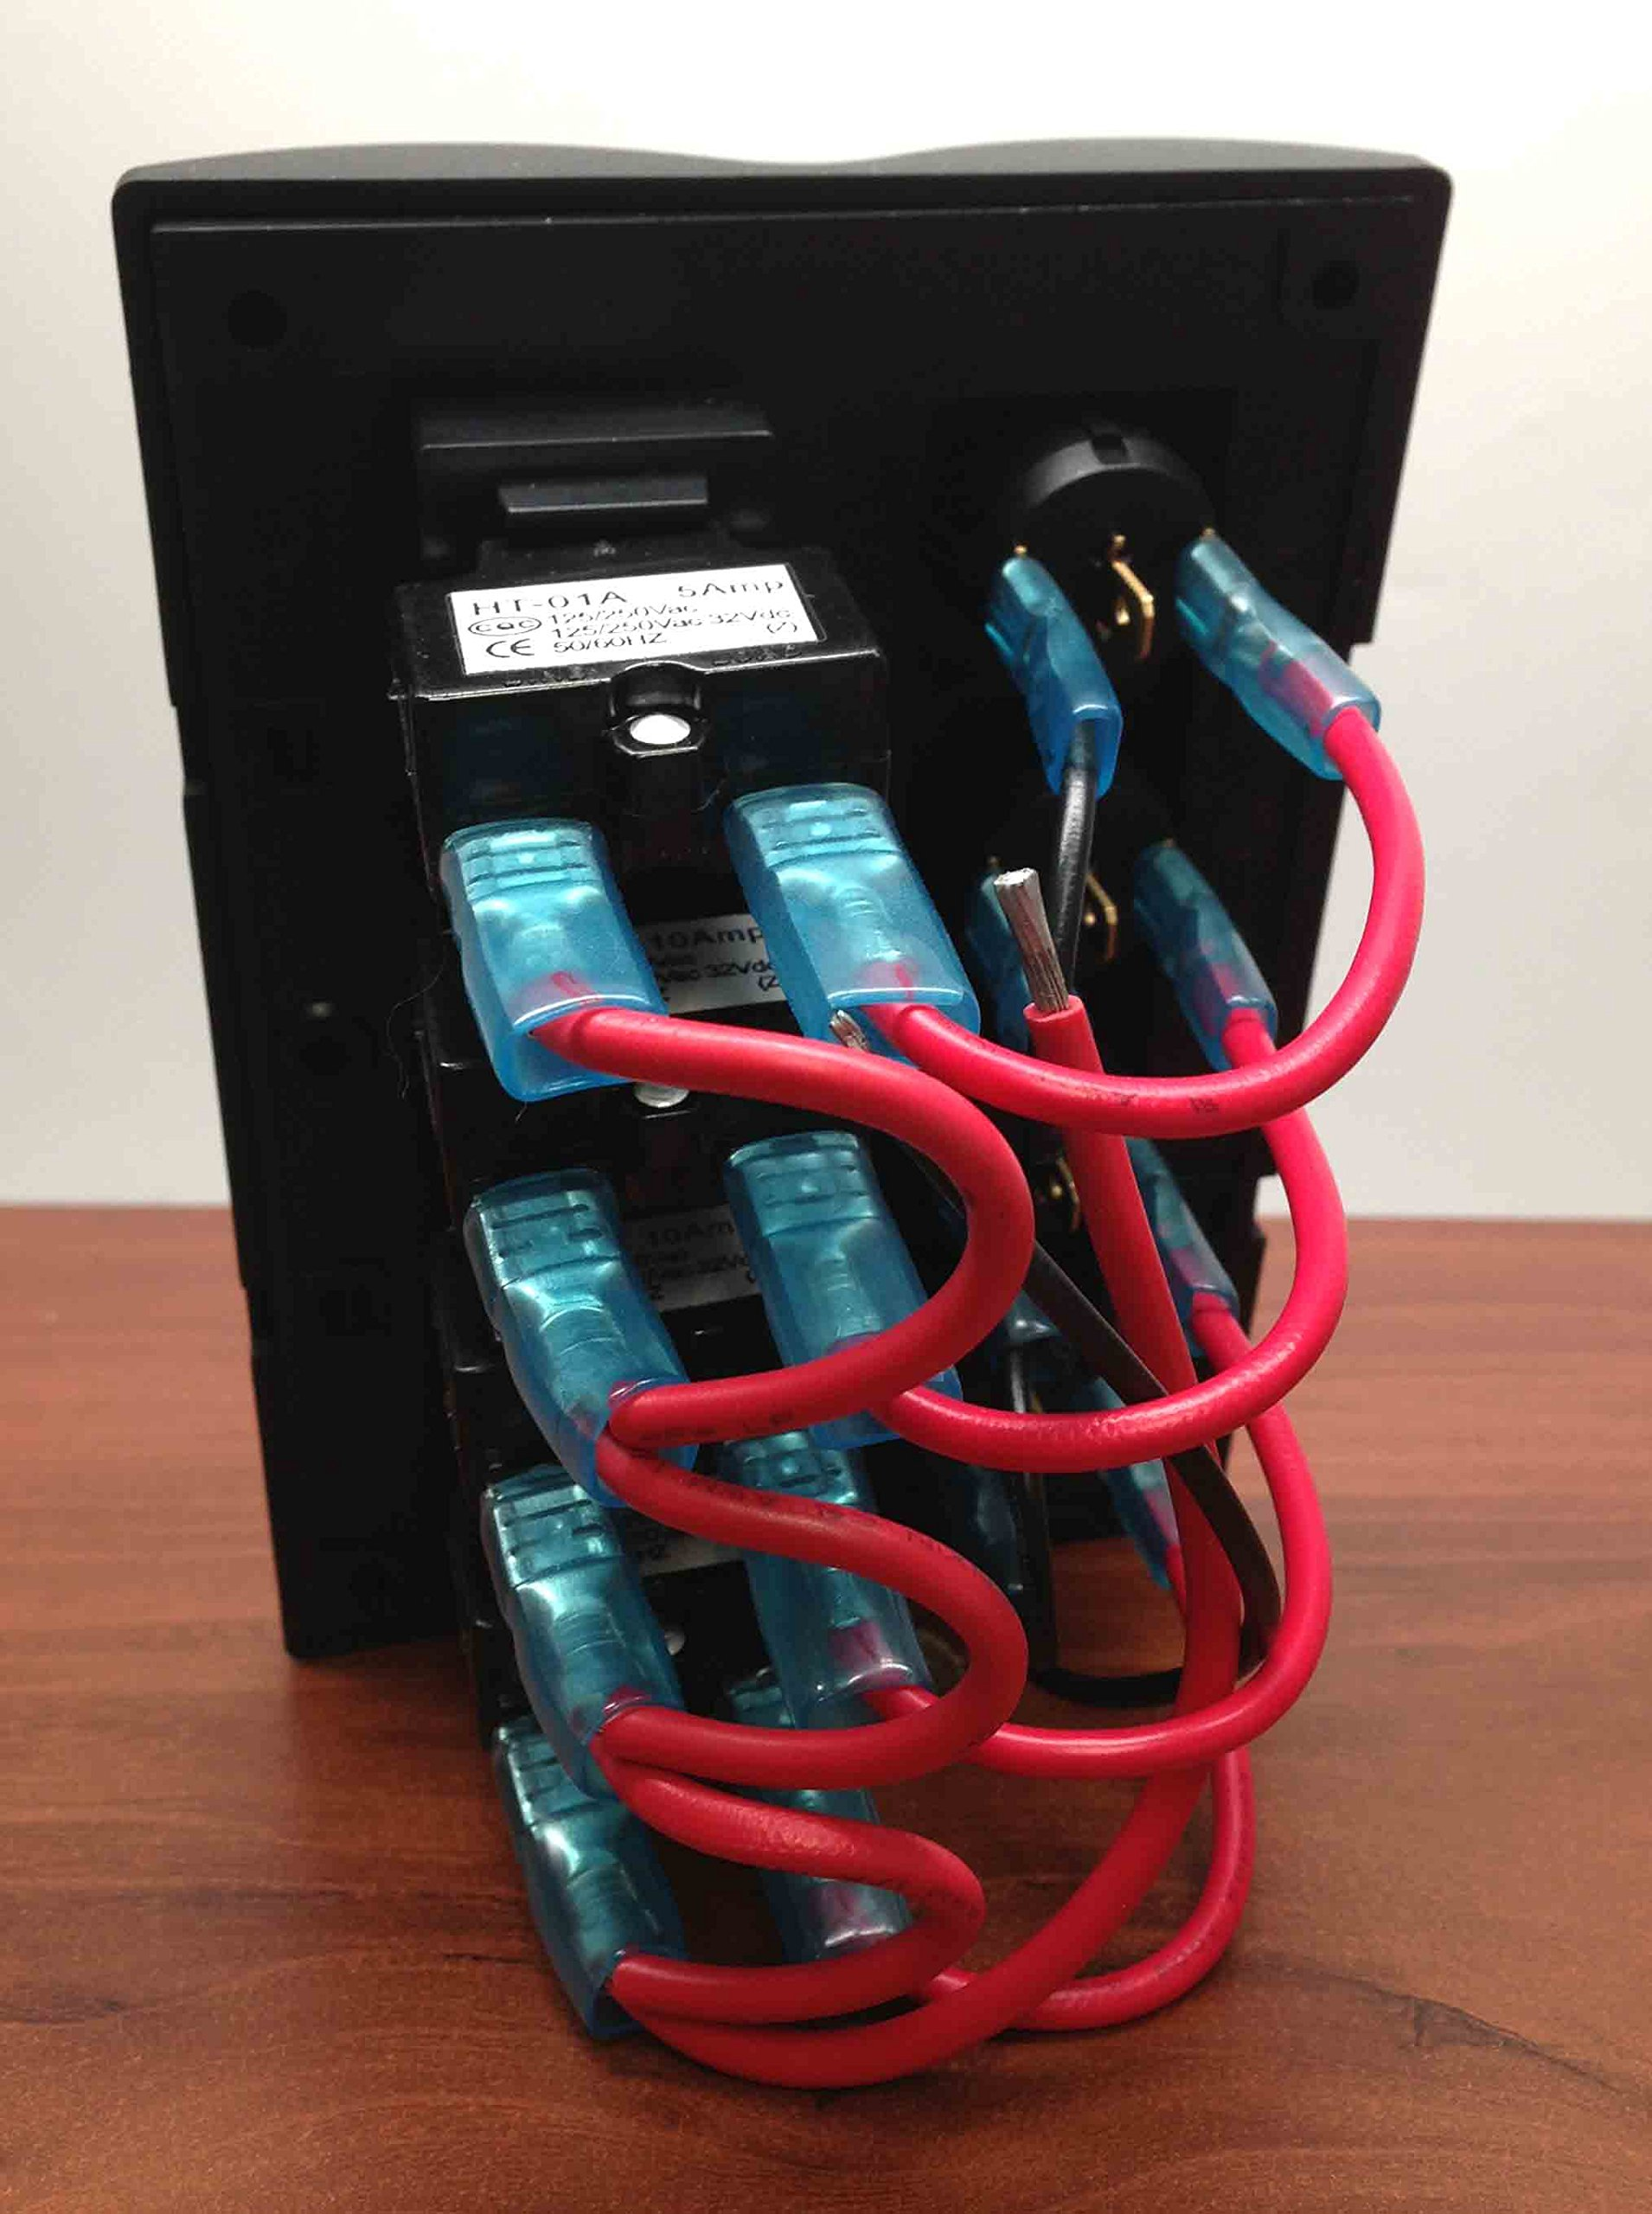 MARINE BOAT CIRCUIT BREAKER SWITCH PANEL 4 GANG WITH LED INDICATOR ROCKER